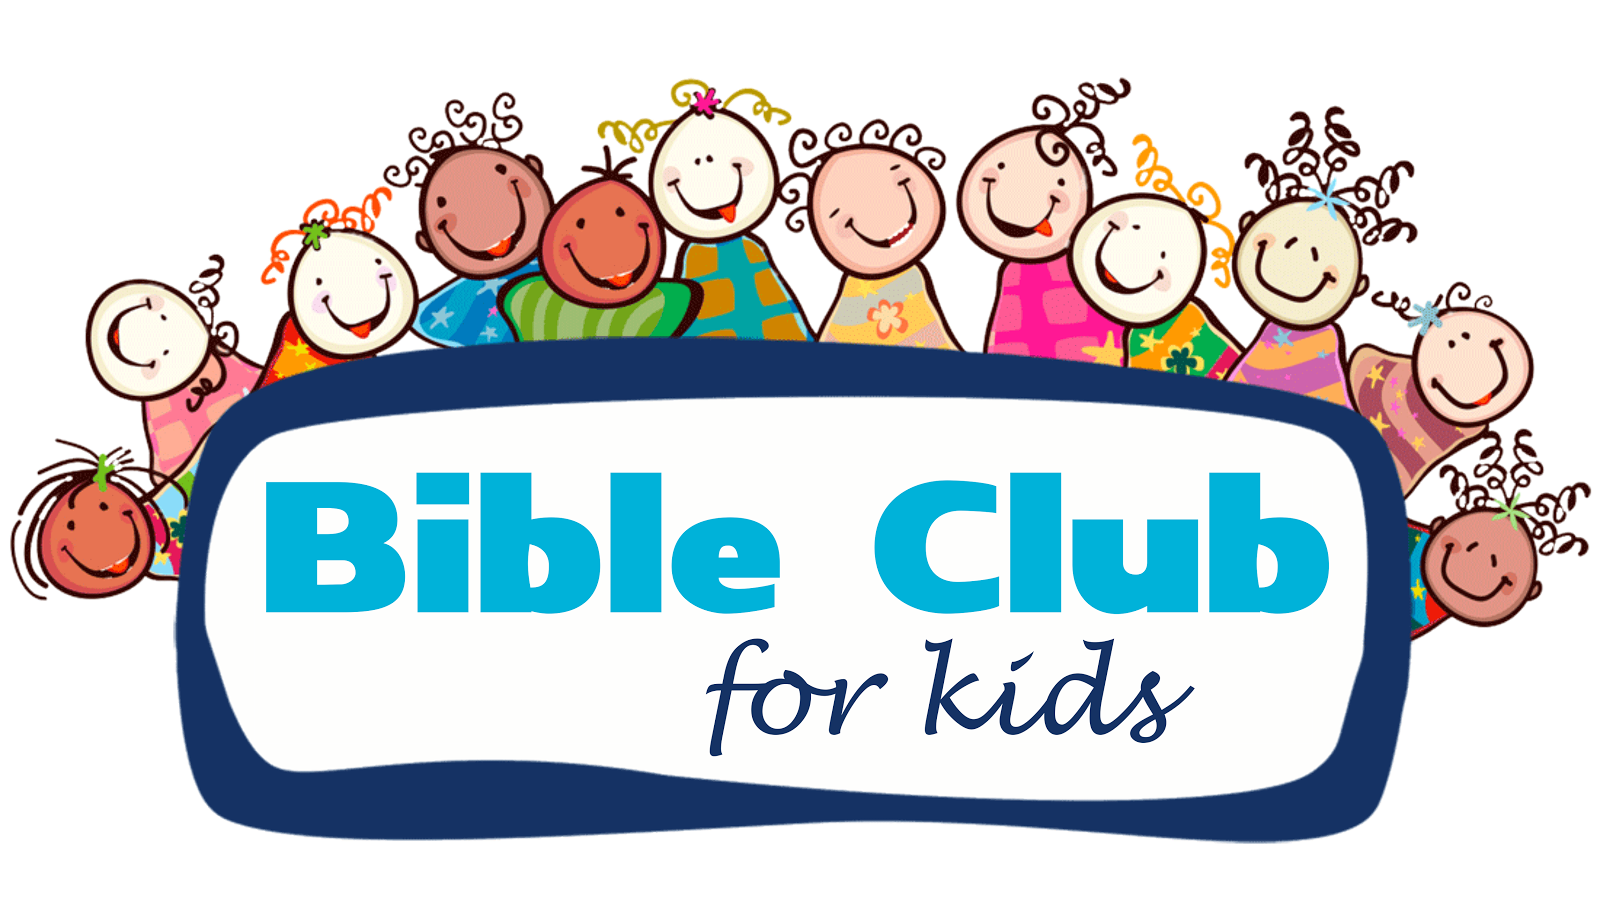 Bible Club for Kids